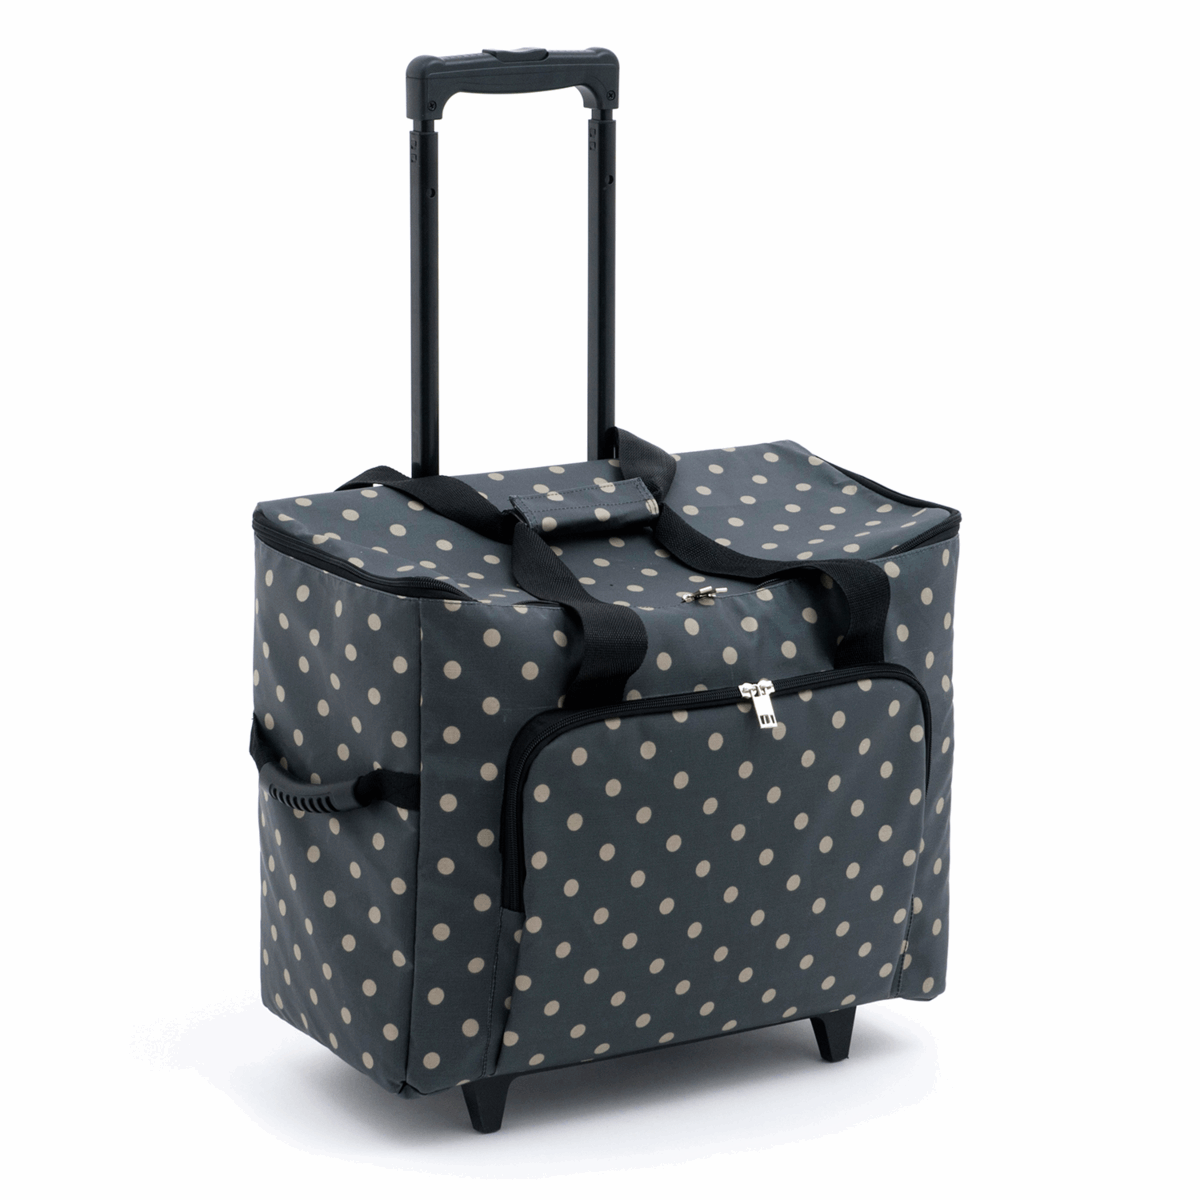 Charcoal Polka Dot Sewing Machine Trolley Bag